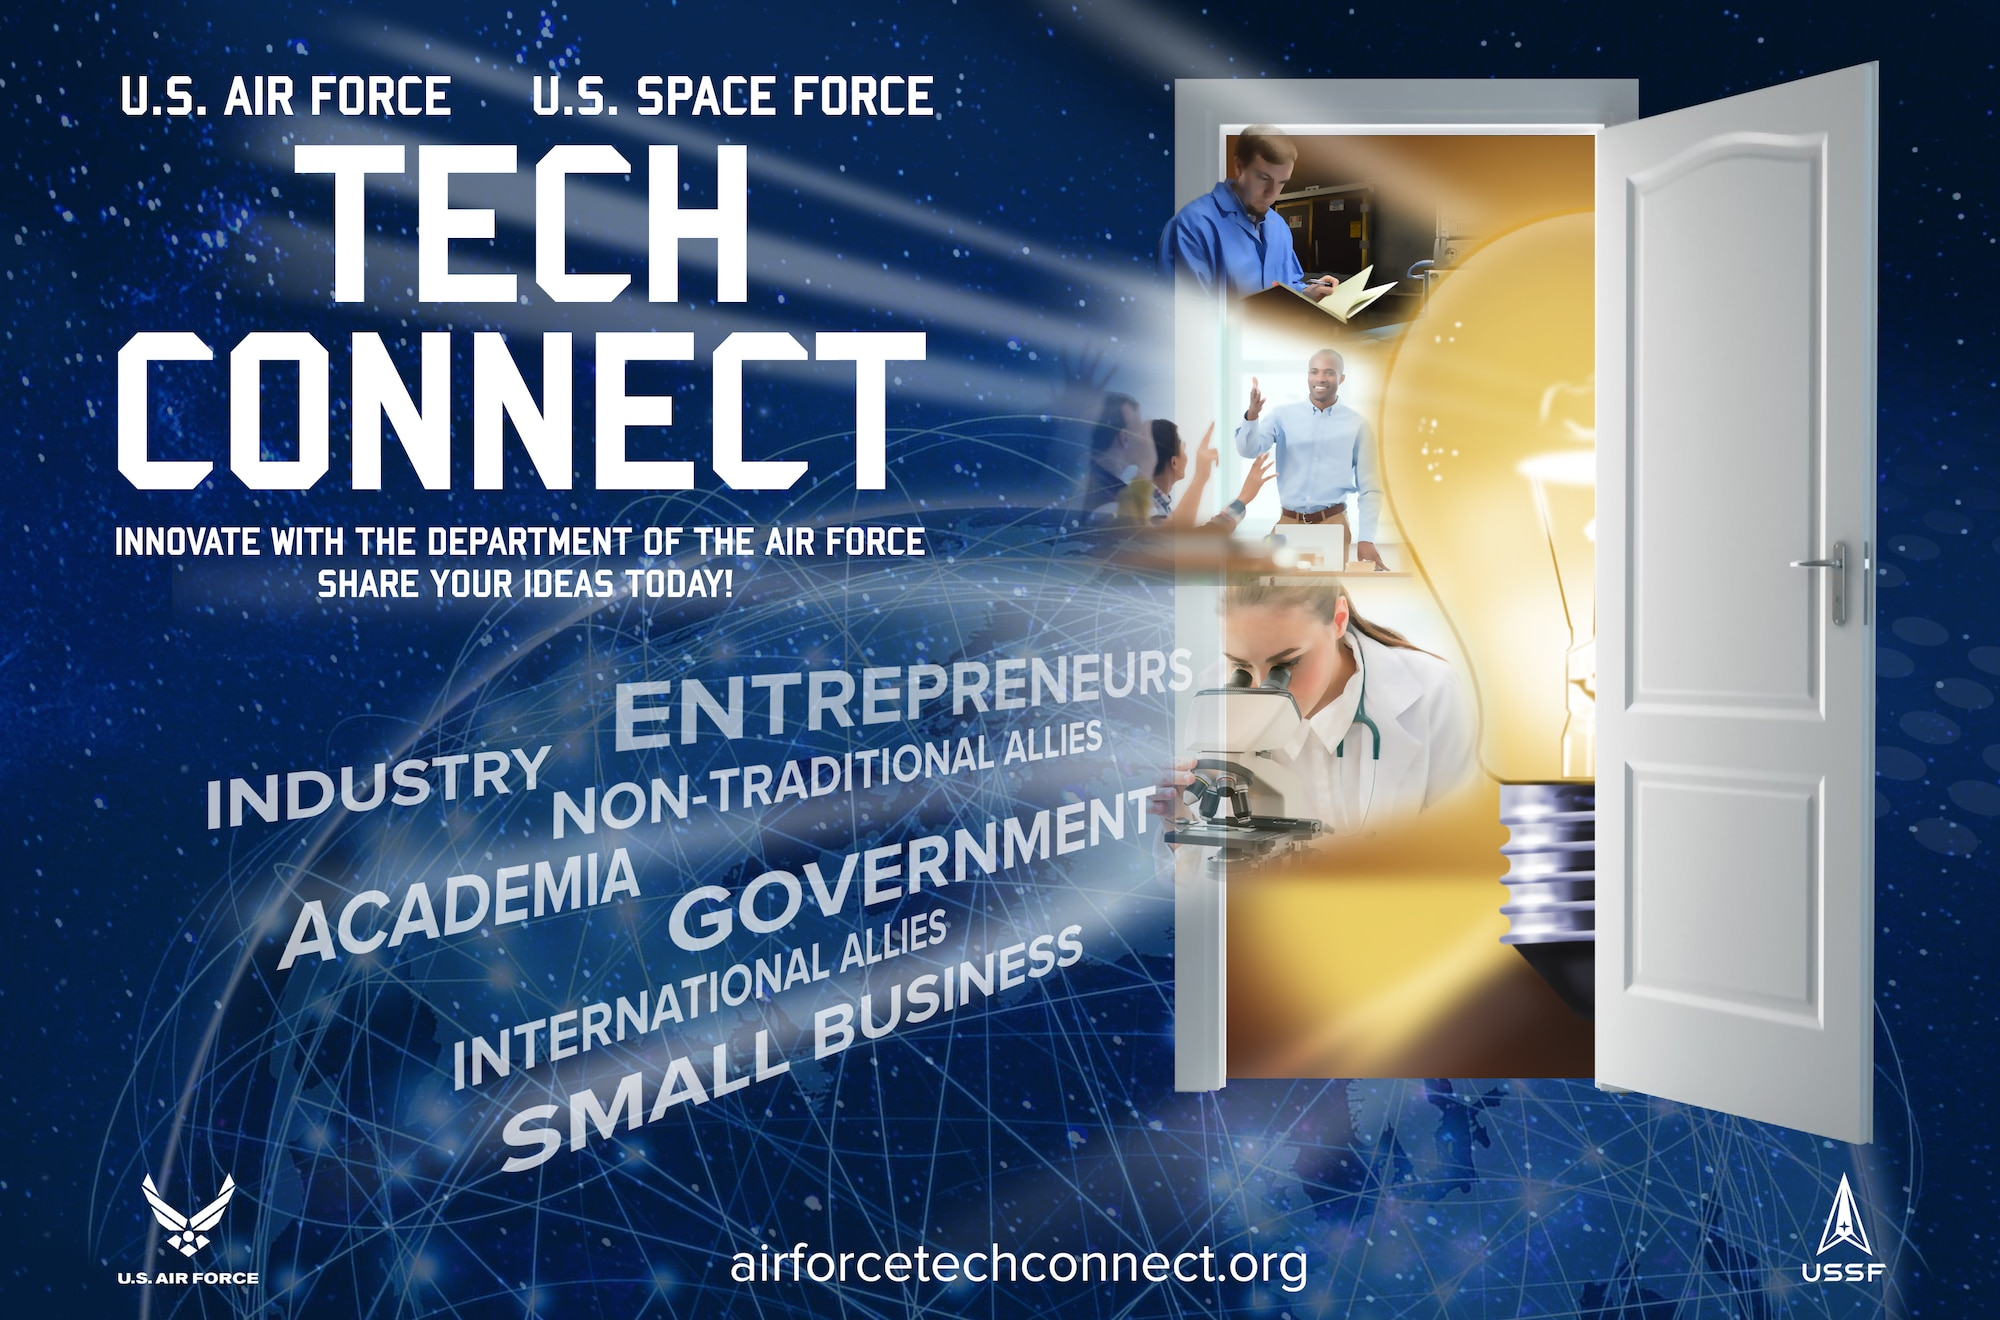 On behalf of the Department of the Air Force, as one laboratory supporting two services, the Air Force Research Laboratory has developed the Air and Space Forces Science & Technology (S&T) Front Door, to connect potential partners with S&T experts and opportunities. The department recognizes that innovative ideas often come from small businesses, industry, academia, or even a project in your neighbor's garage that can help solve problems the department has identified. Visit www.airforcetechconnect.org for more information. (U.S. Air Force graphic/Randy Palmer)